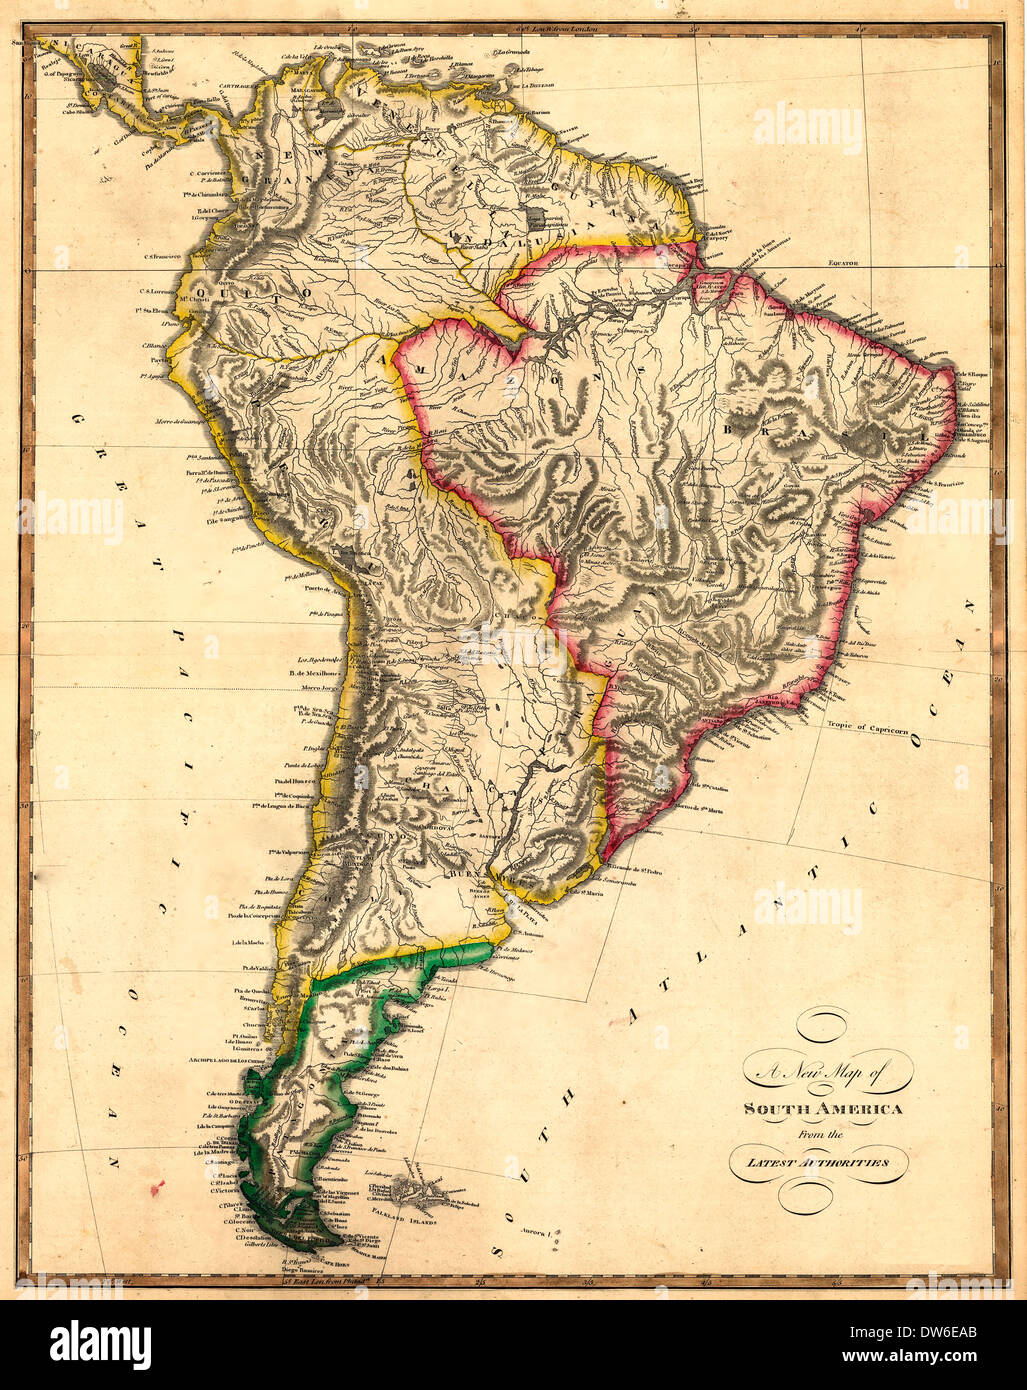 Map Of South America Spanish Stock Photos & Map Of South ...